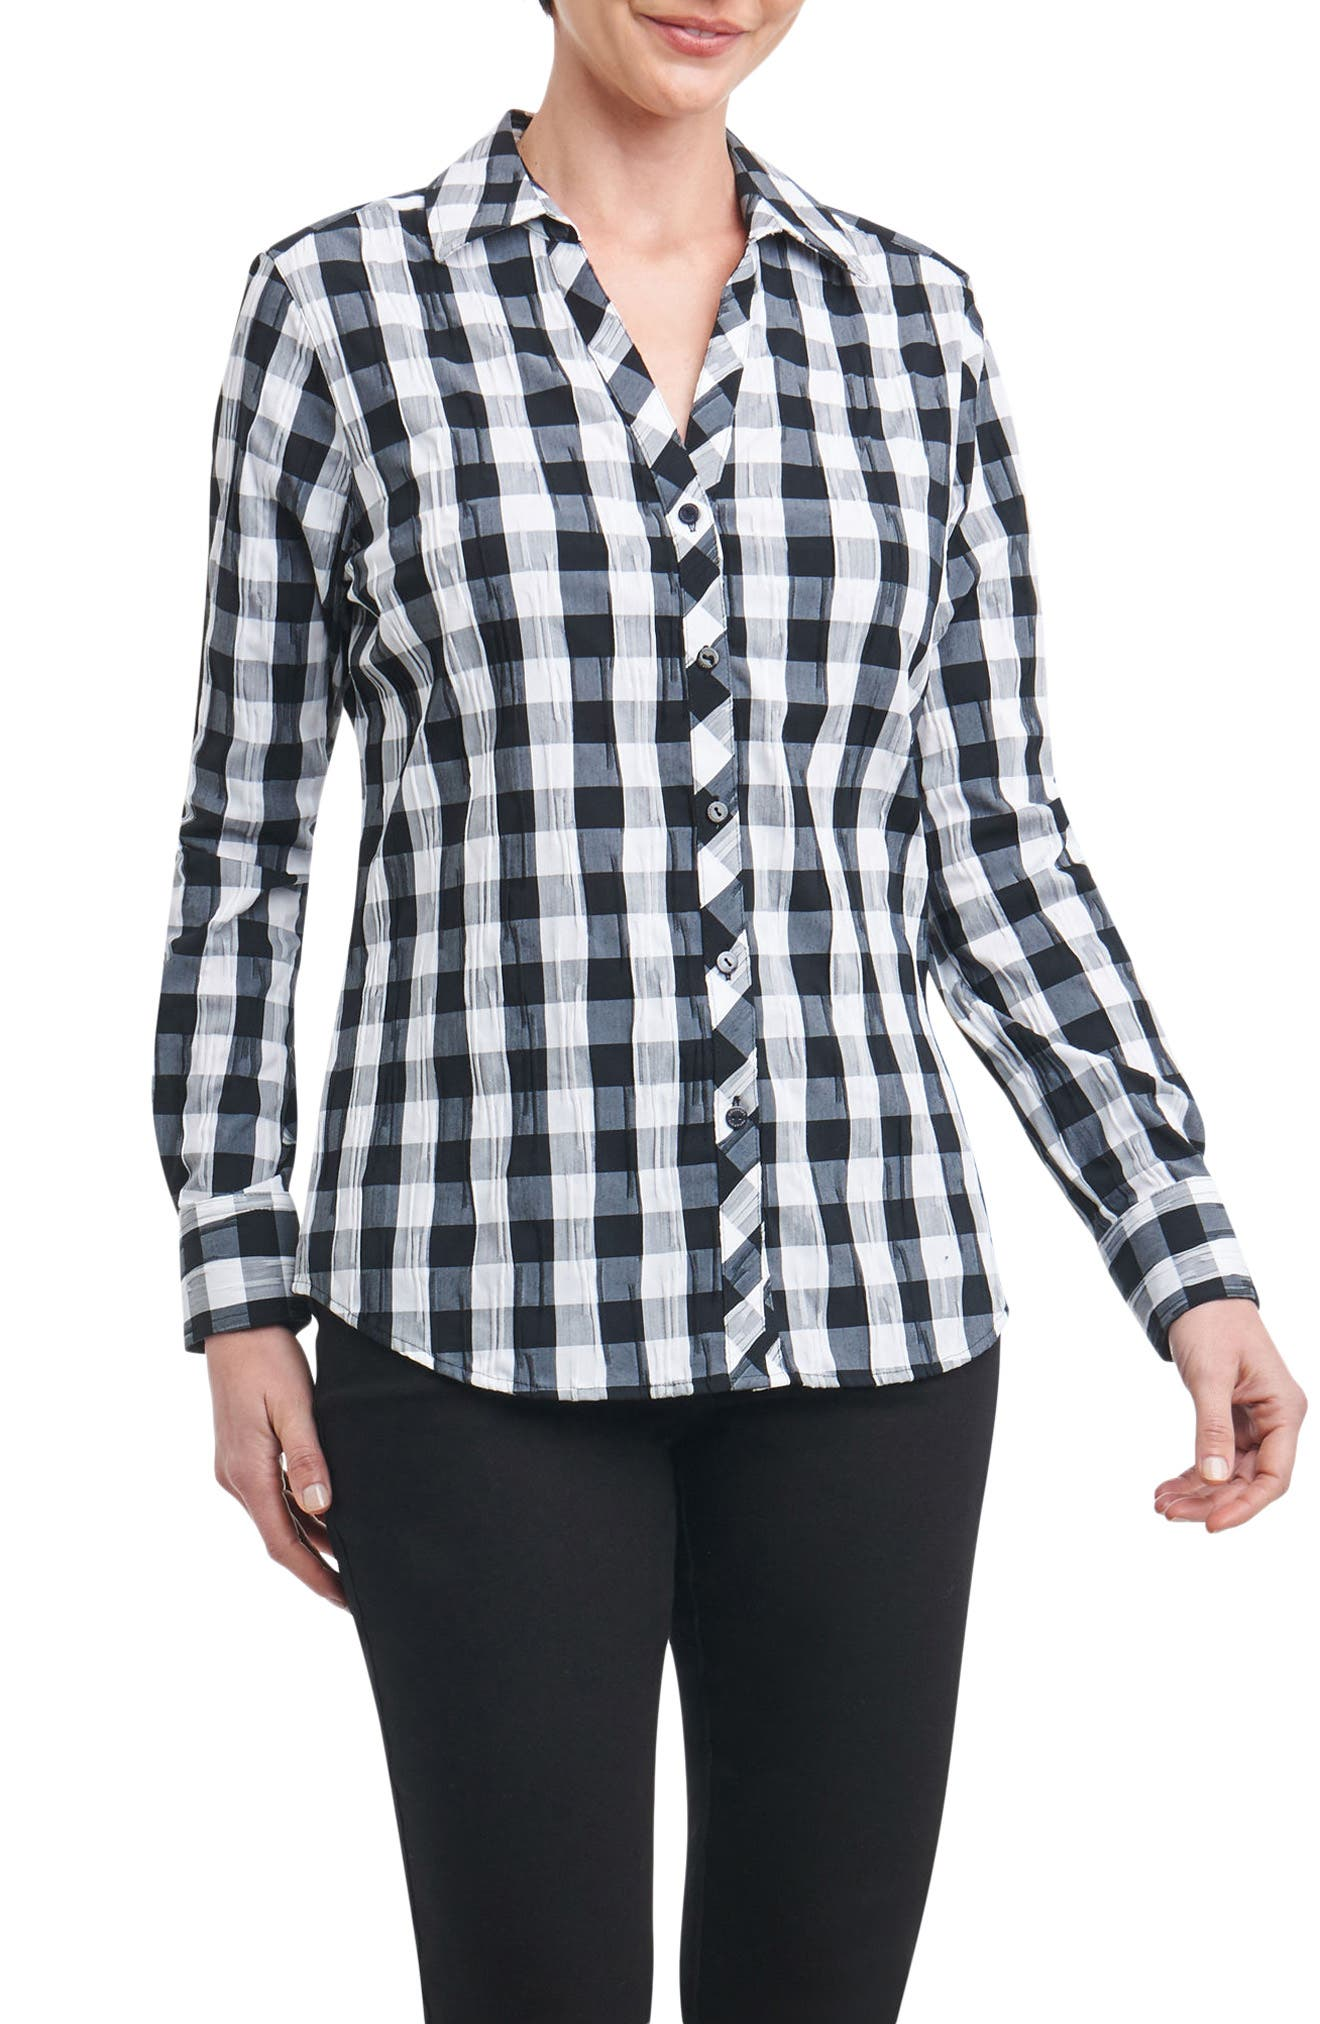 Mary Buffalo Check Crinkle Shirt,                         Main,                         color, 100